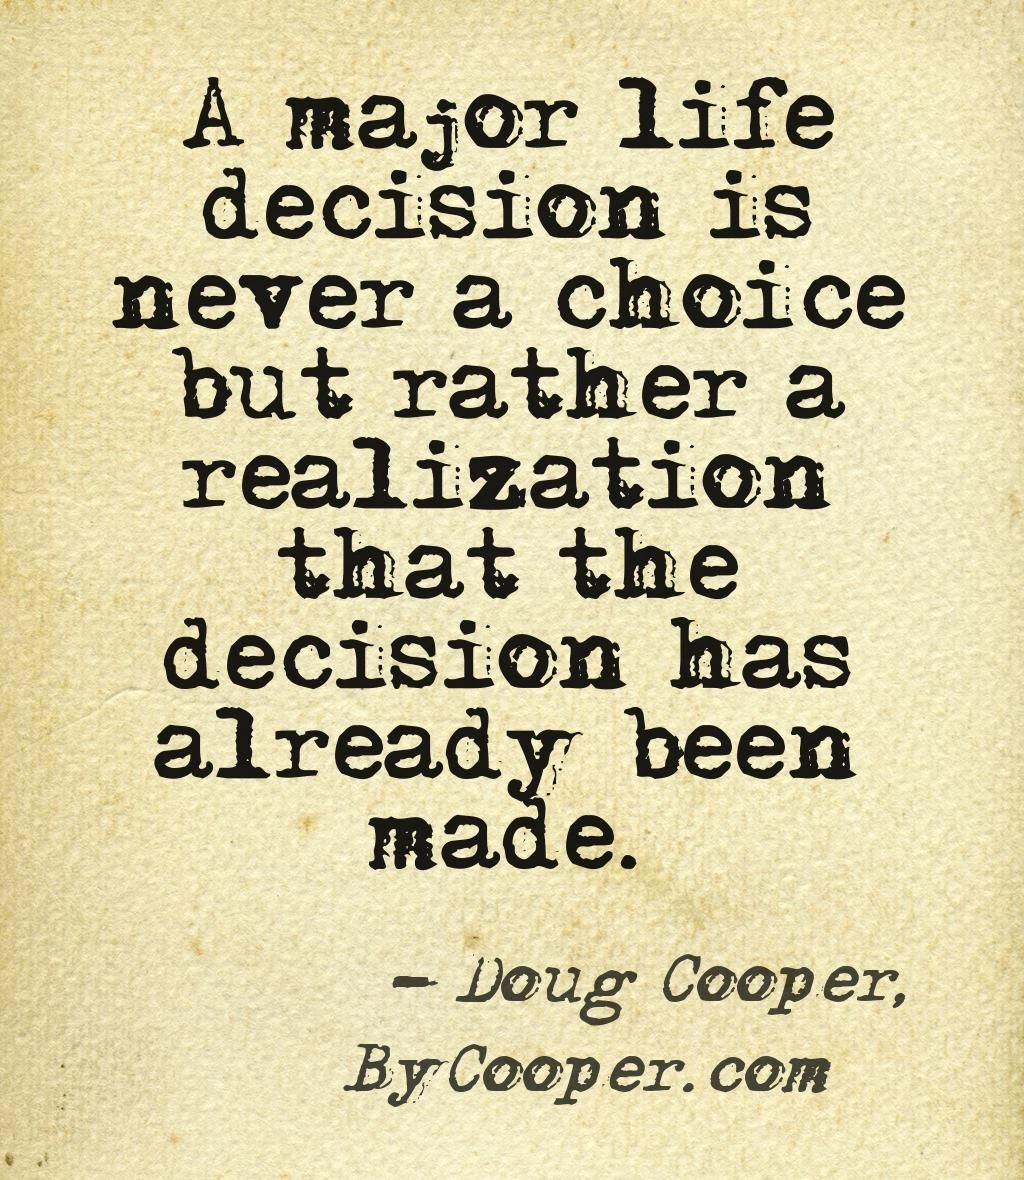 Life Decision Quotes A major life decision is never a choice but rather a realization  Life Decision Quotes